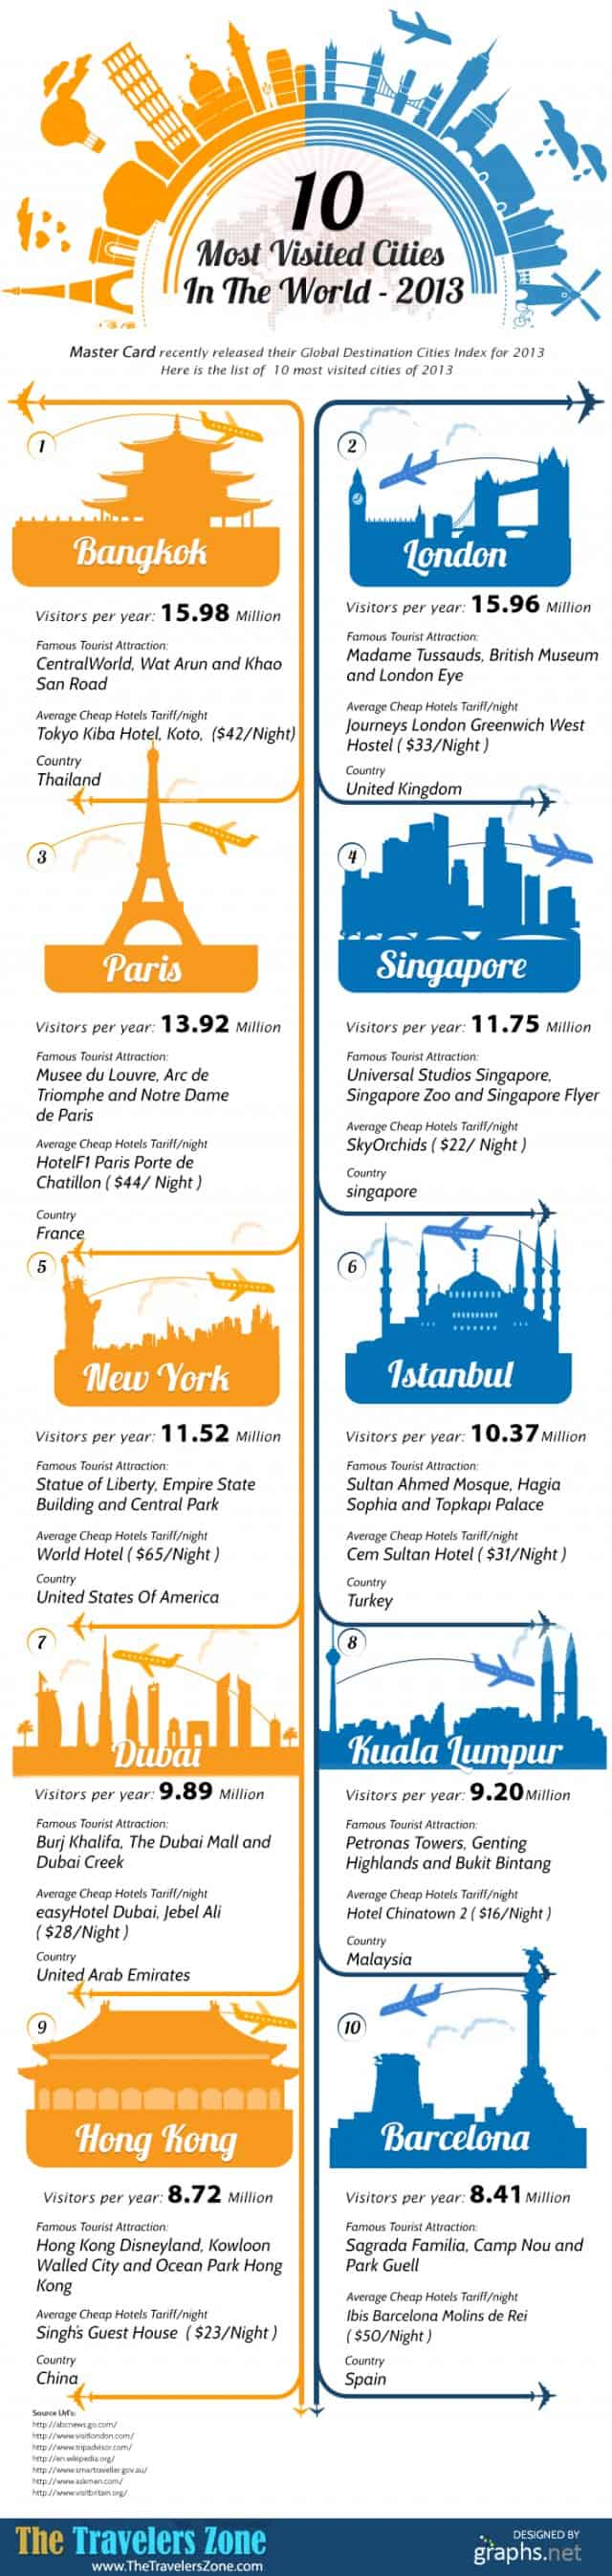 10 Most Visited Cities in the World Infographic